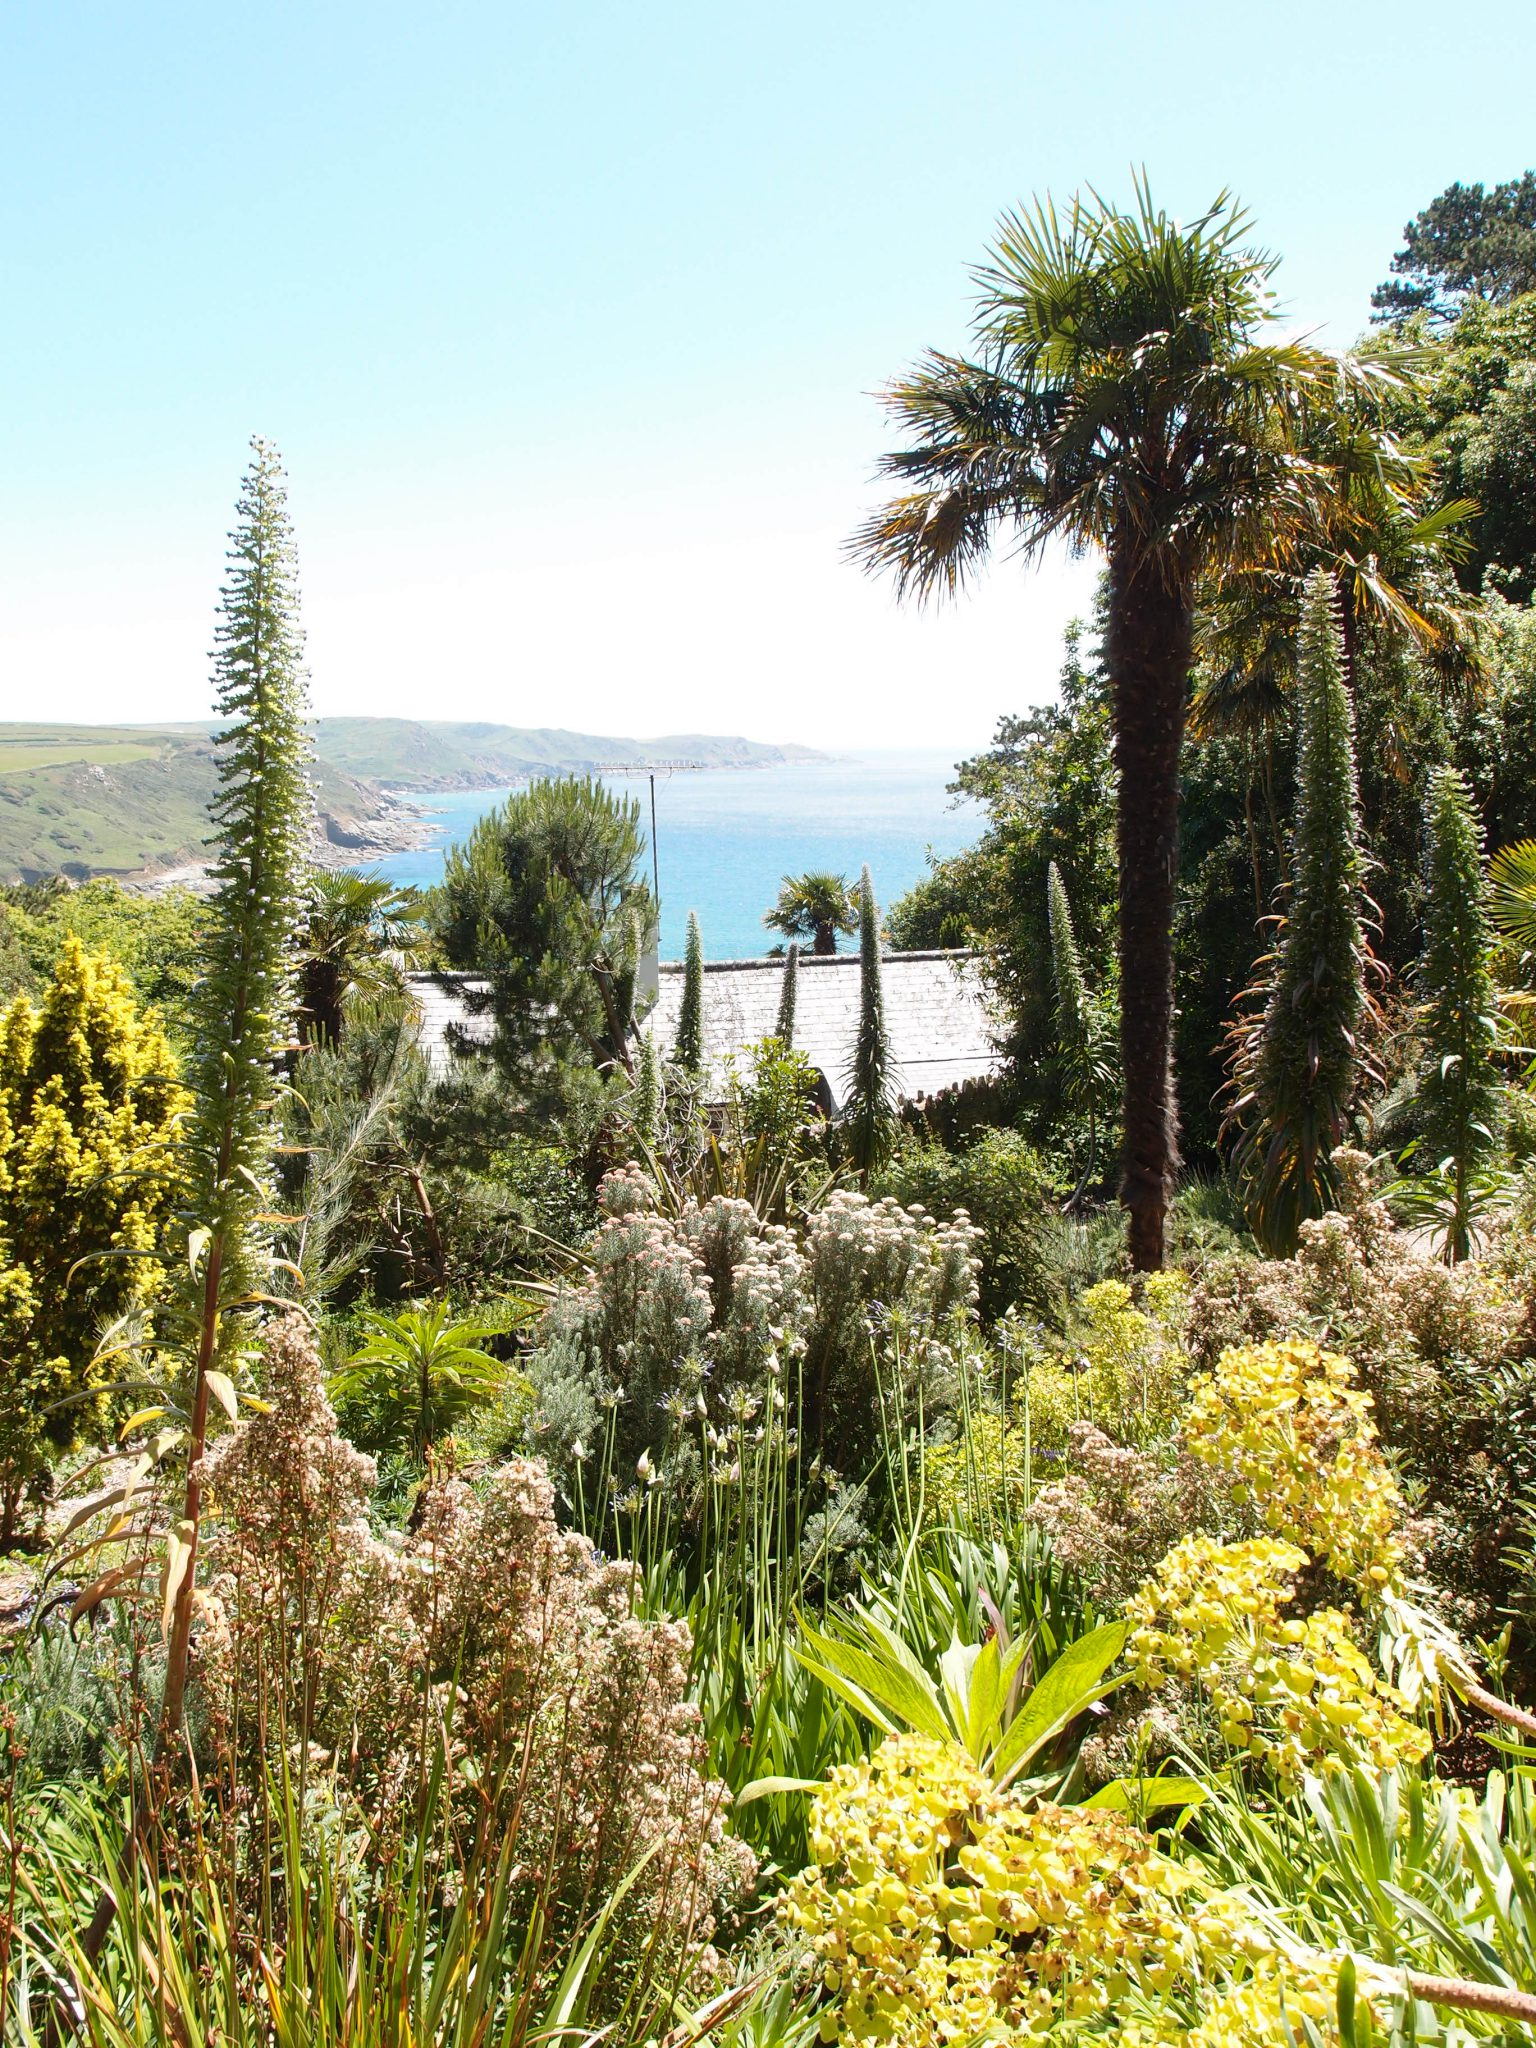 View of Salcombe Bay, from the Palm Gardens.